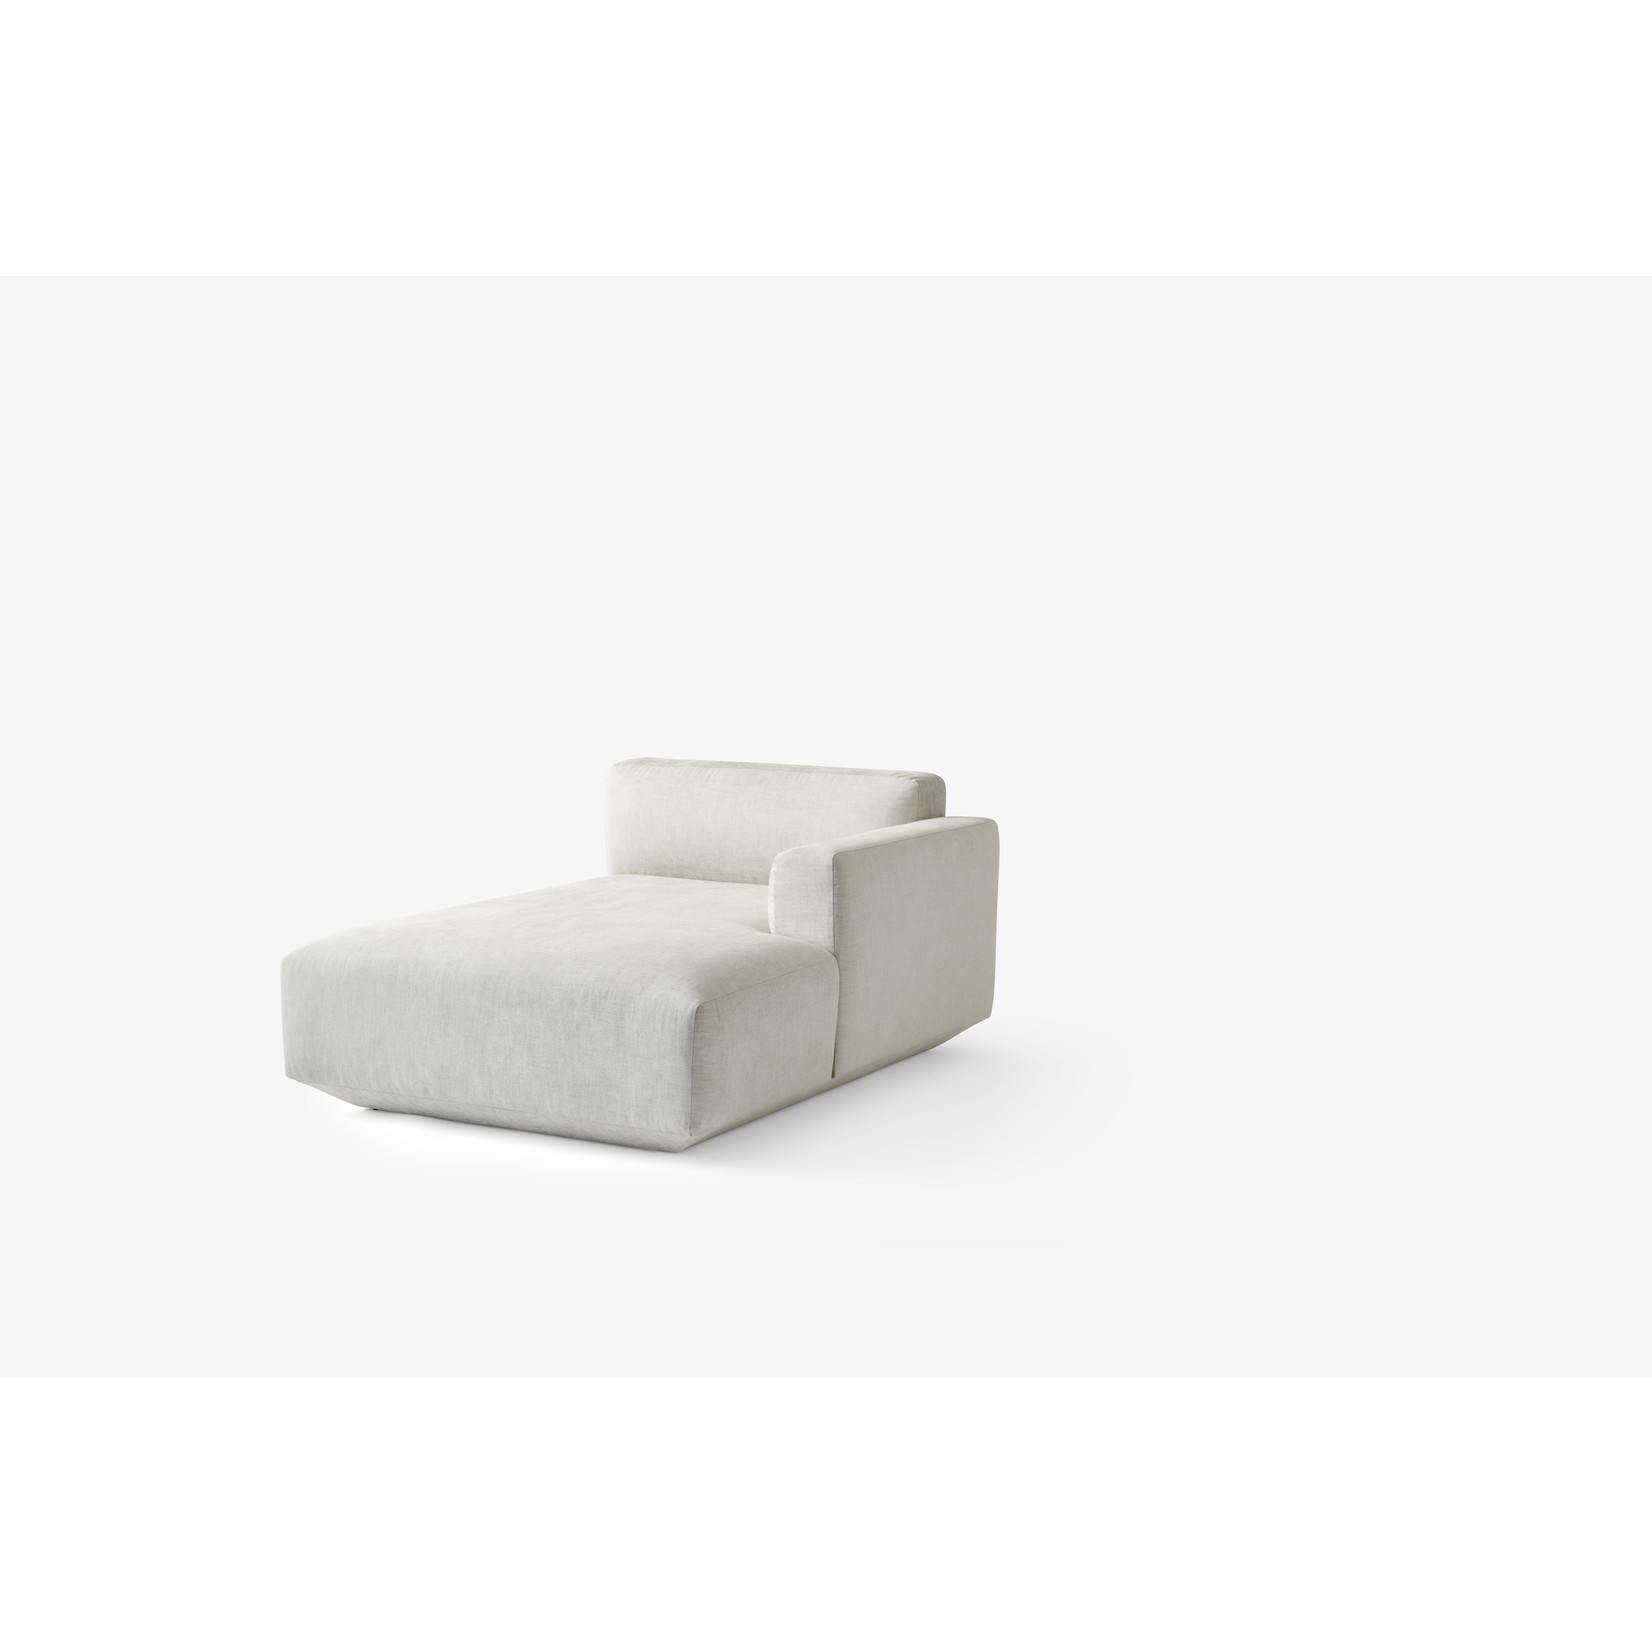 &Tradition Develius EV1I Right chaise long   Maple 112